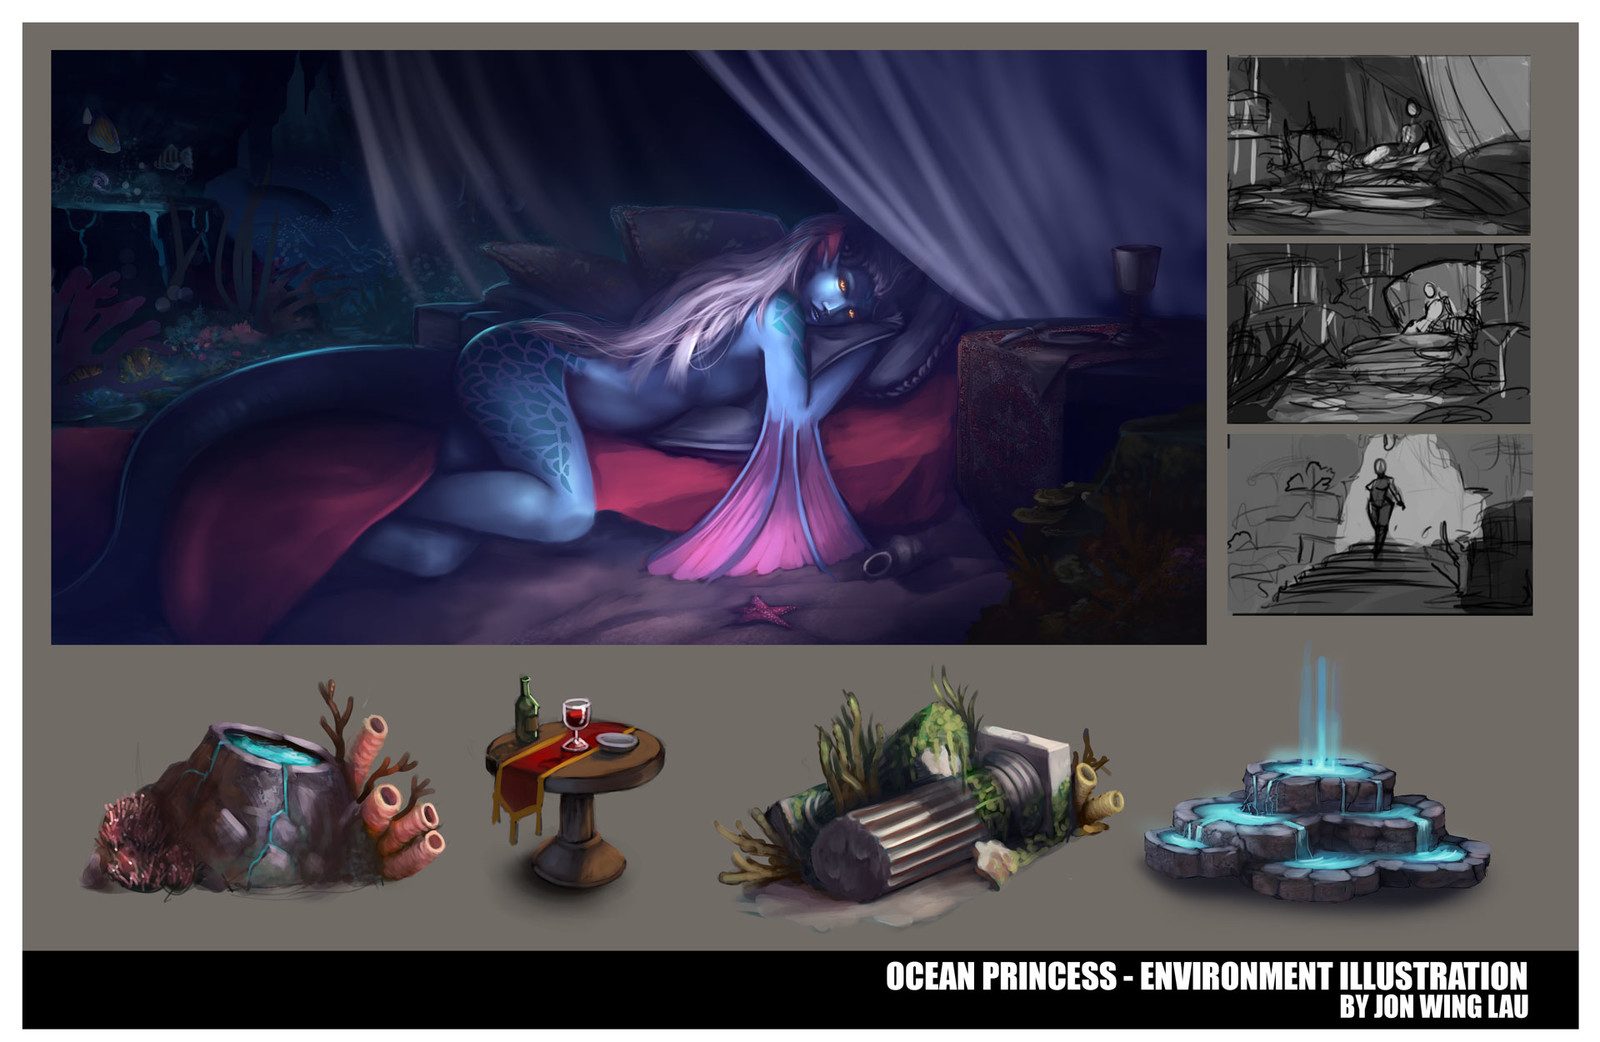 Ocean Princess - Environment Illustration